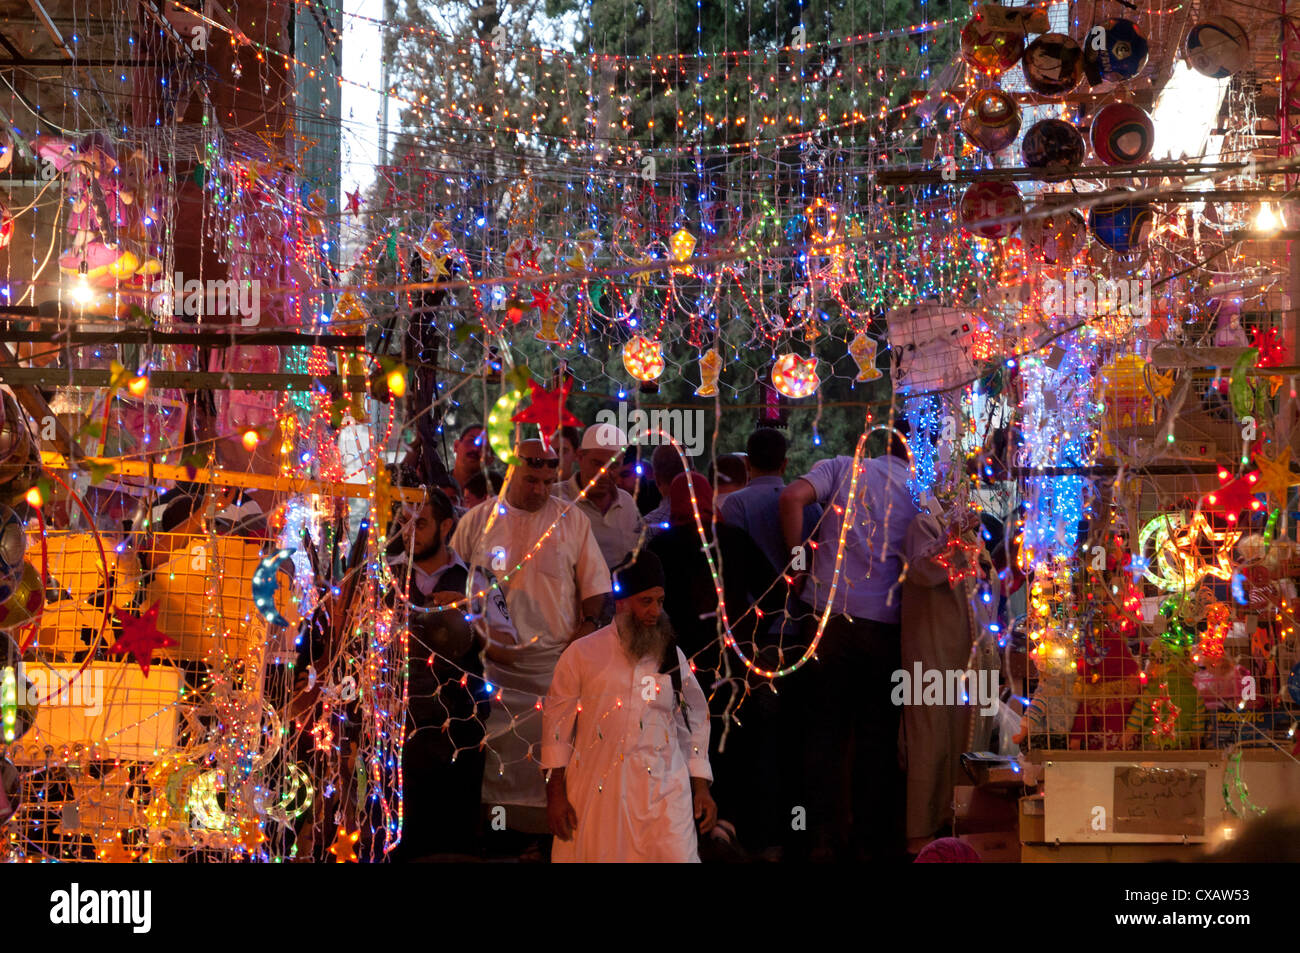 Ramadan decorations in a cotton market, Jerusalem Old City, Israel, Middle East - Stock Image